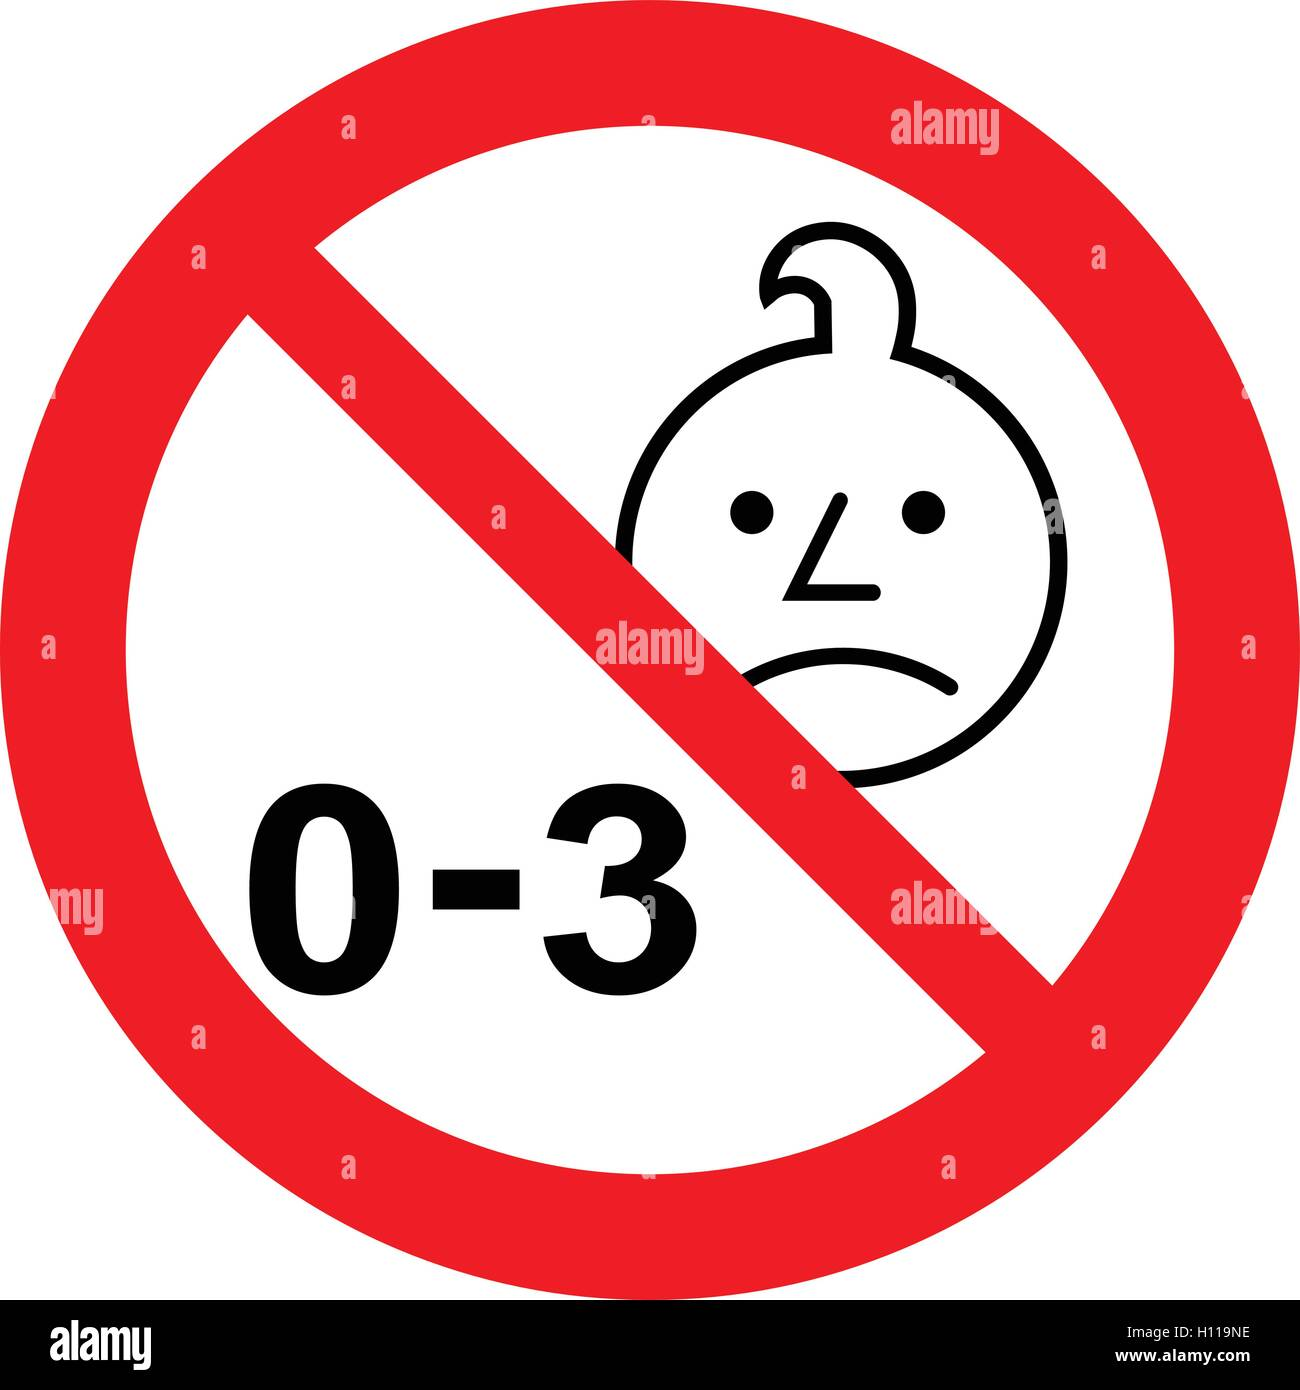 Not For Children Under 3 Years Sku: Not Suitable For Children Under 3 Years Symbol, Child